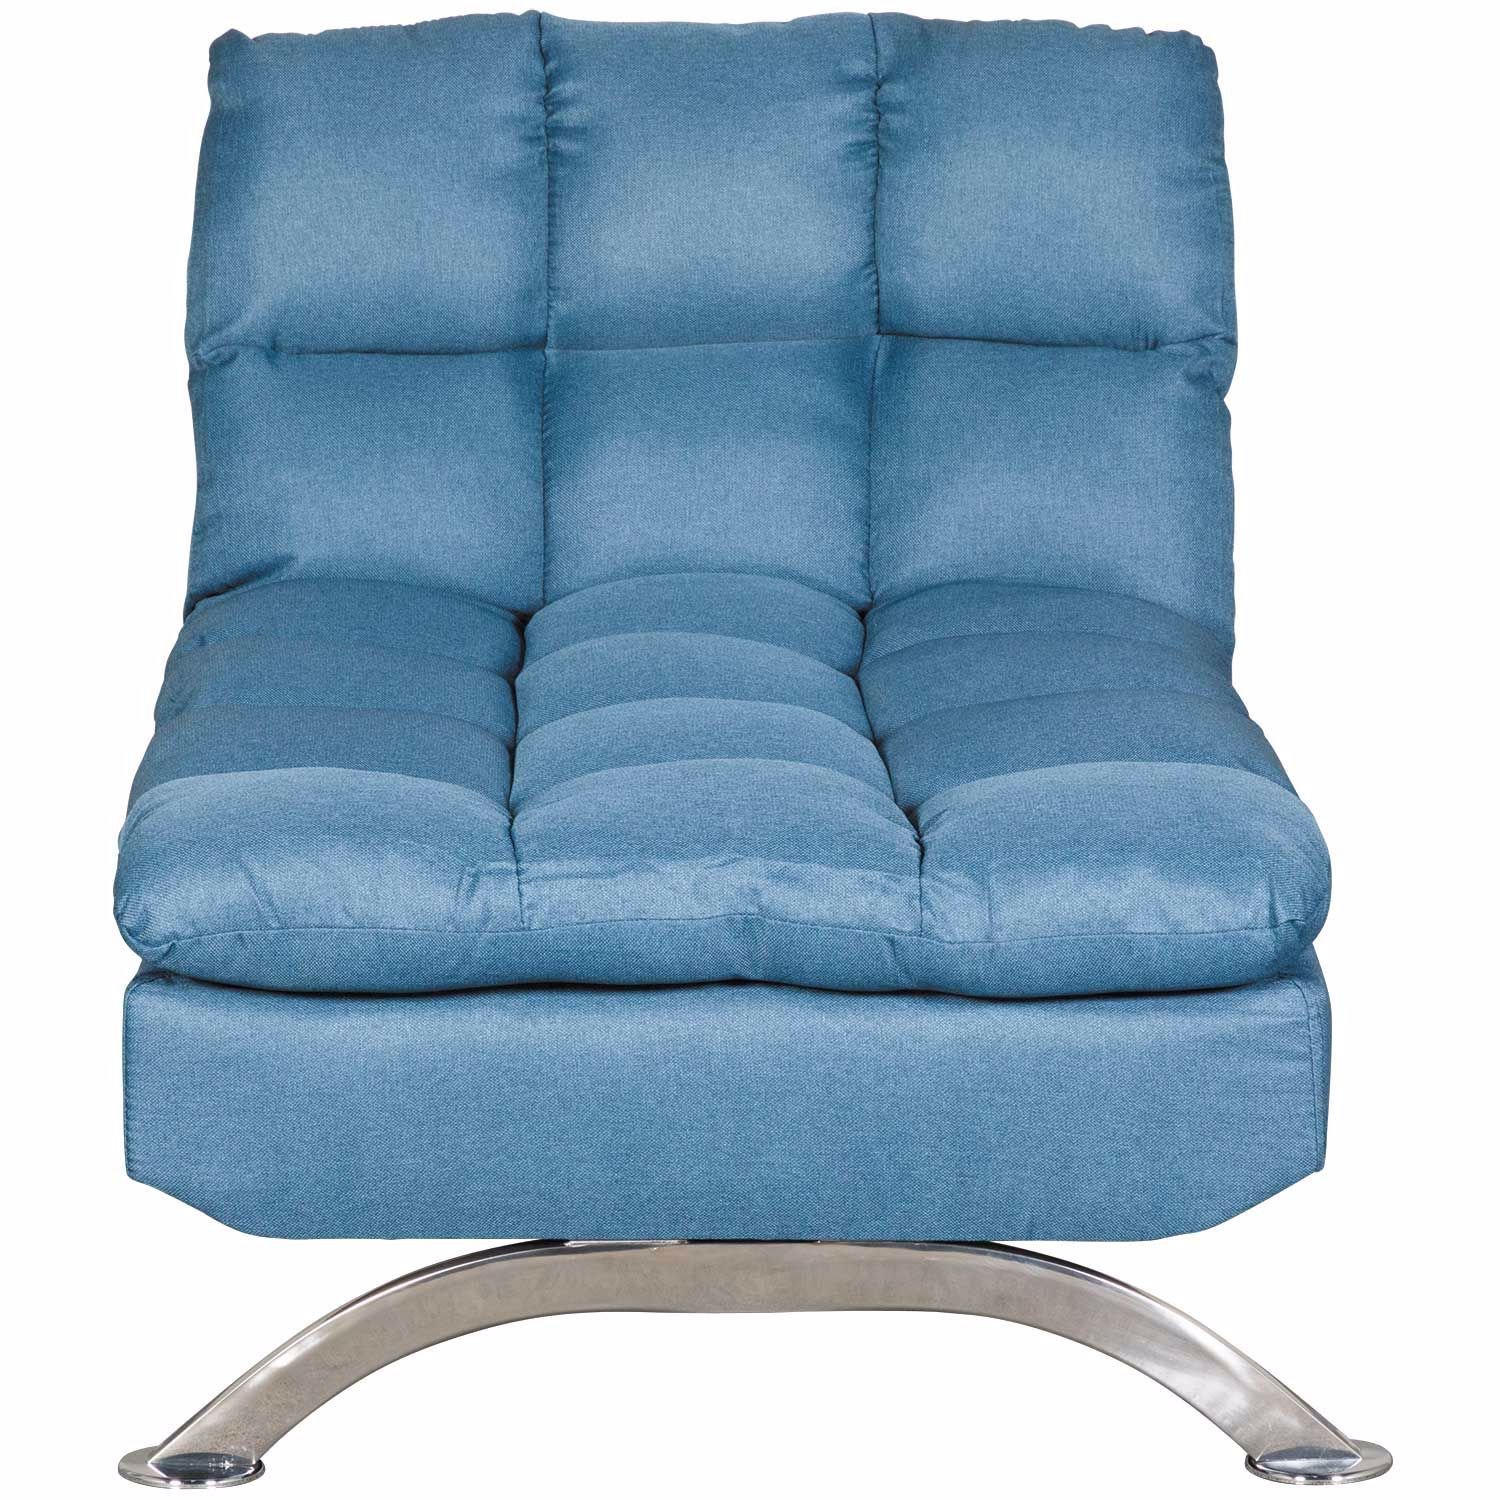 Picture of Mayfill Converta Chaise in Blue Linen